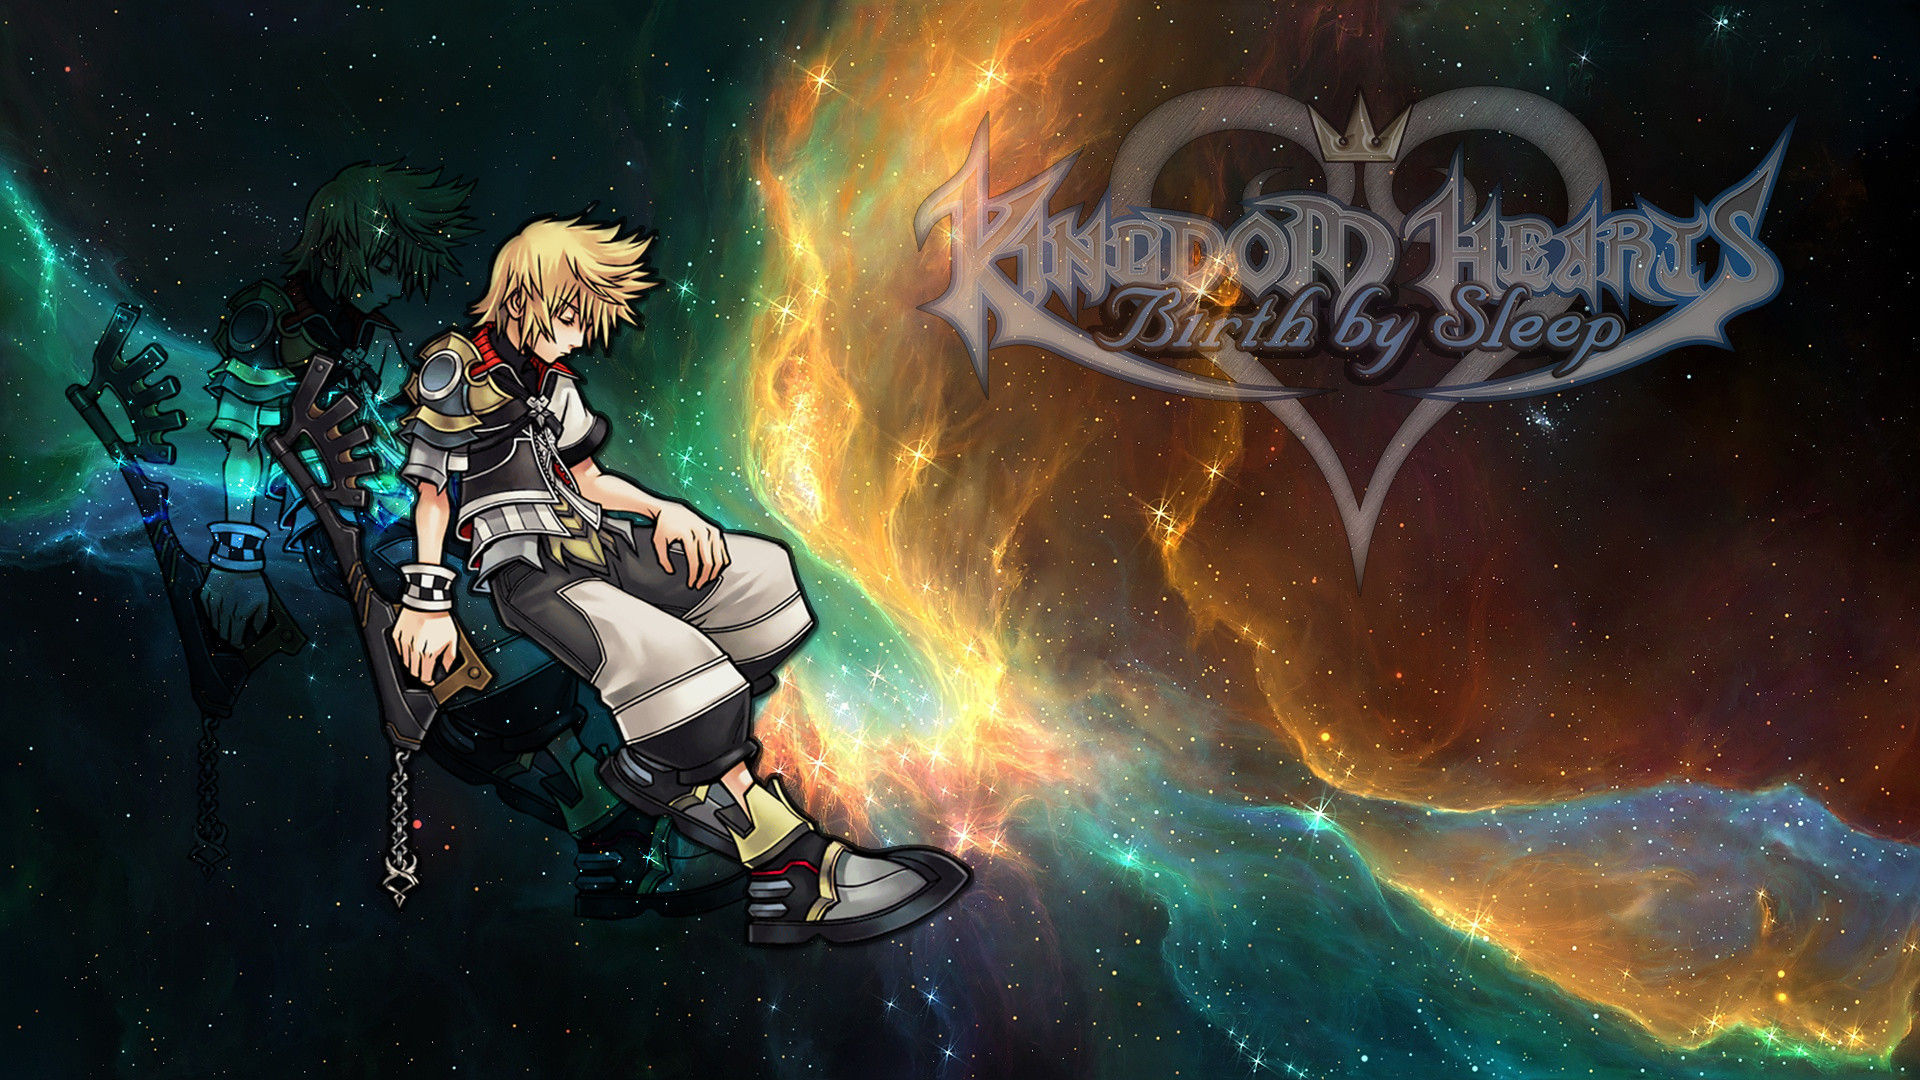 1920x1080 Kingdom hearts wallpaper 1920*1080